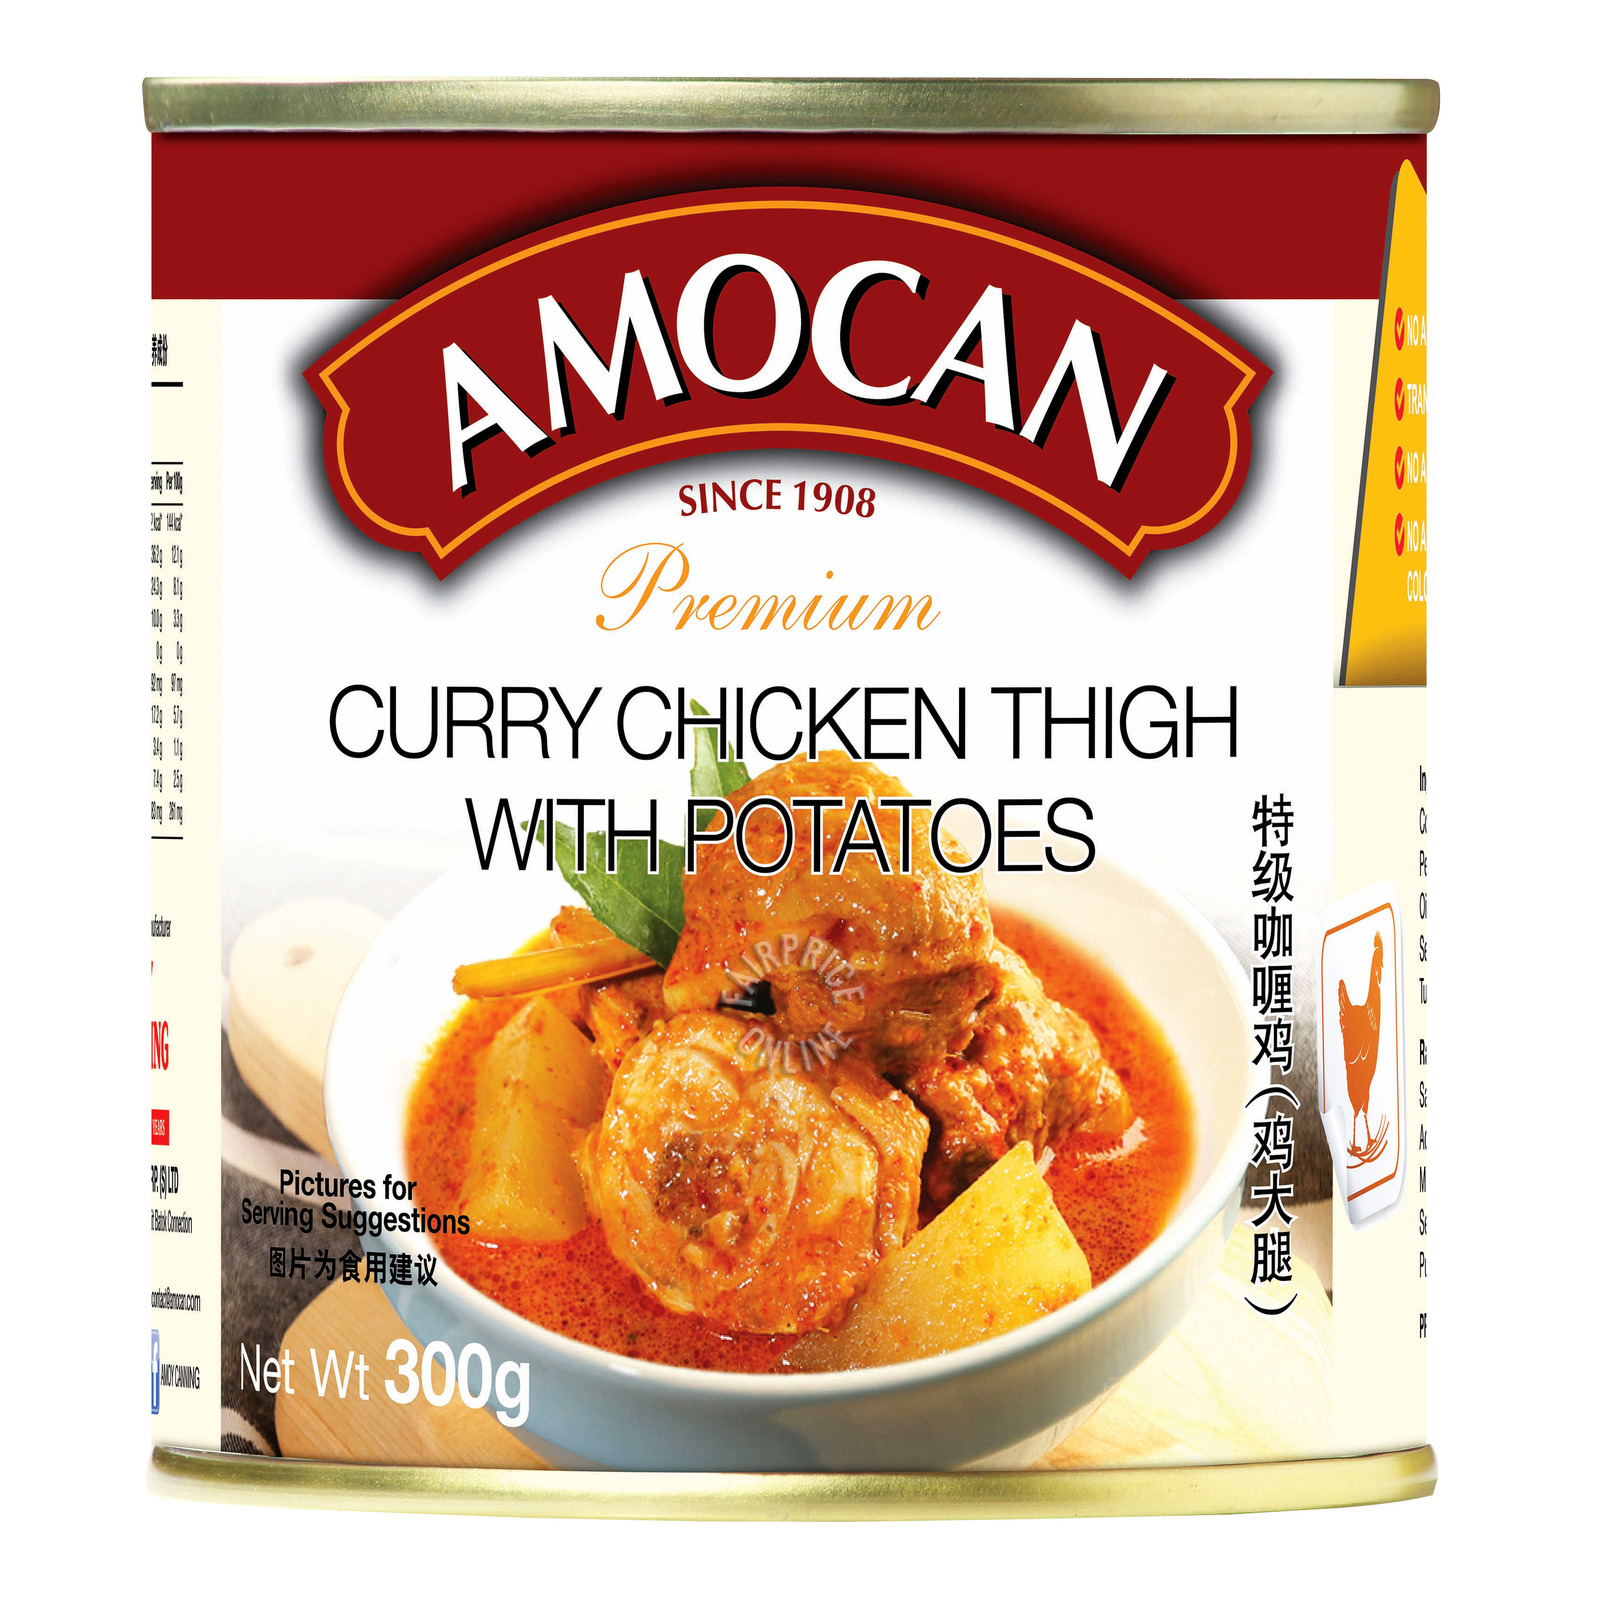 Amocan Premium Can Food - Curry Chicken Thigh with Potatoes